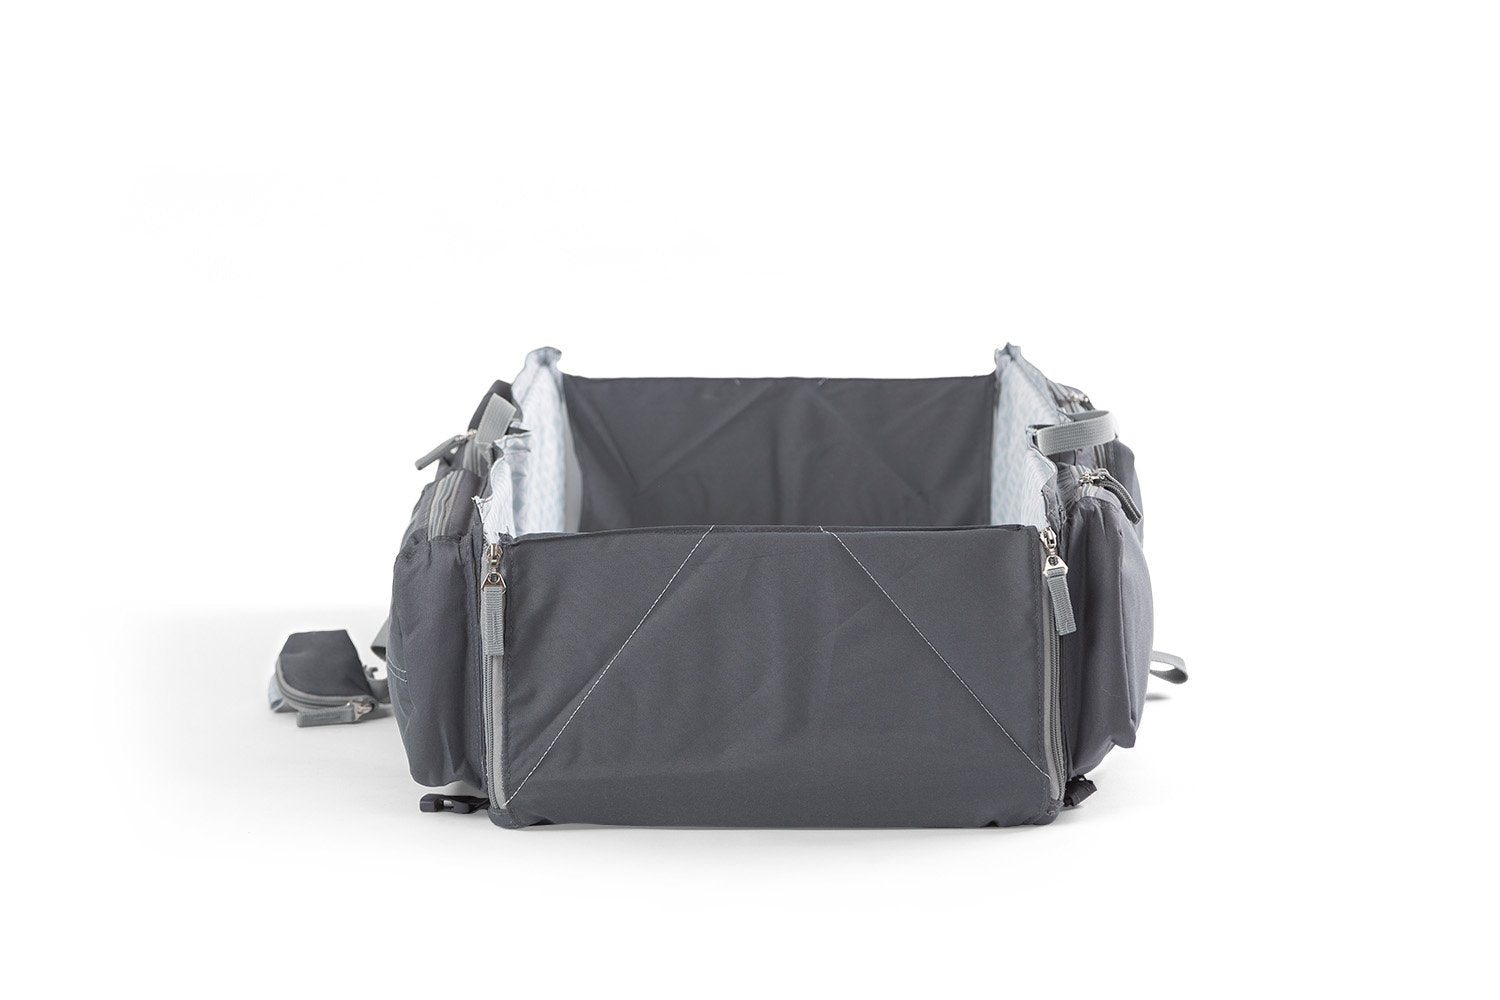 21e31d91eb0 Baby Travel - Nursery Bag and Carrycot